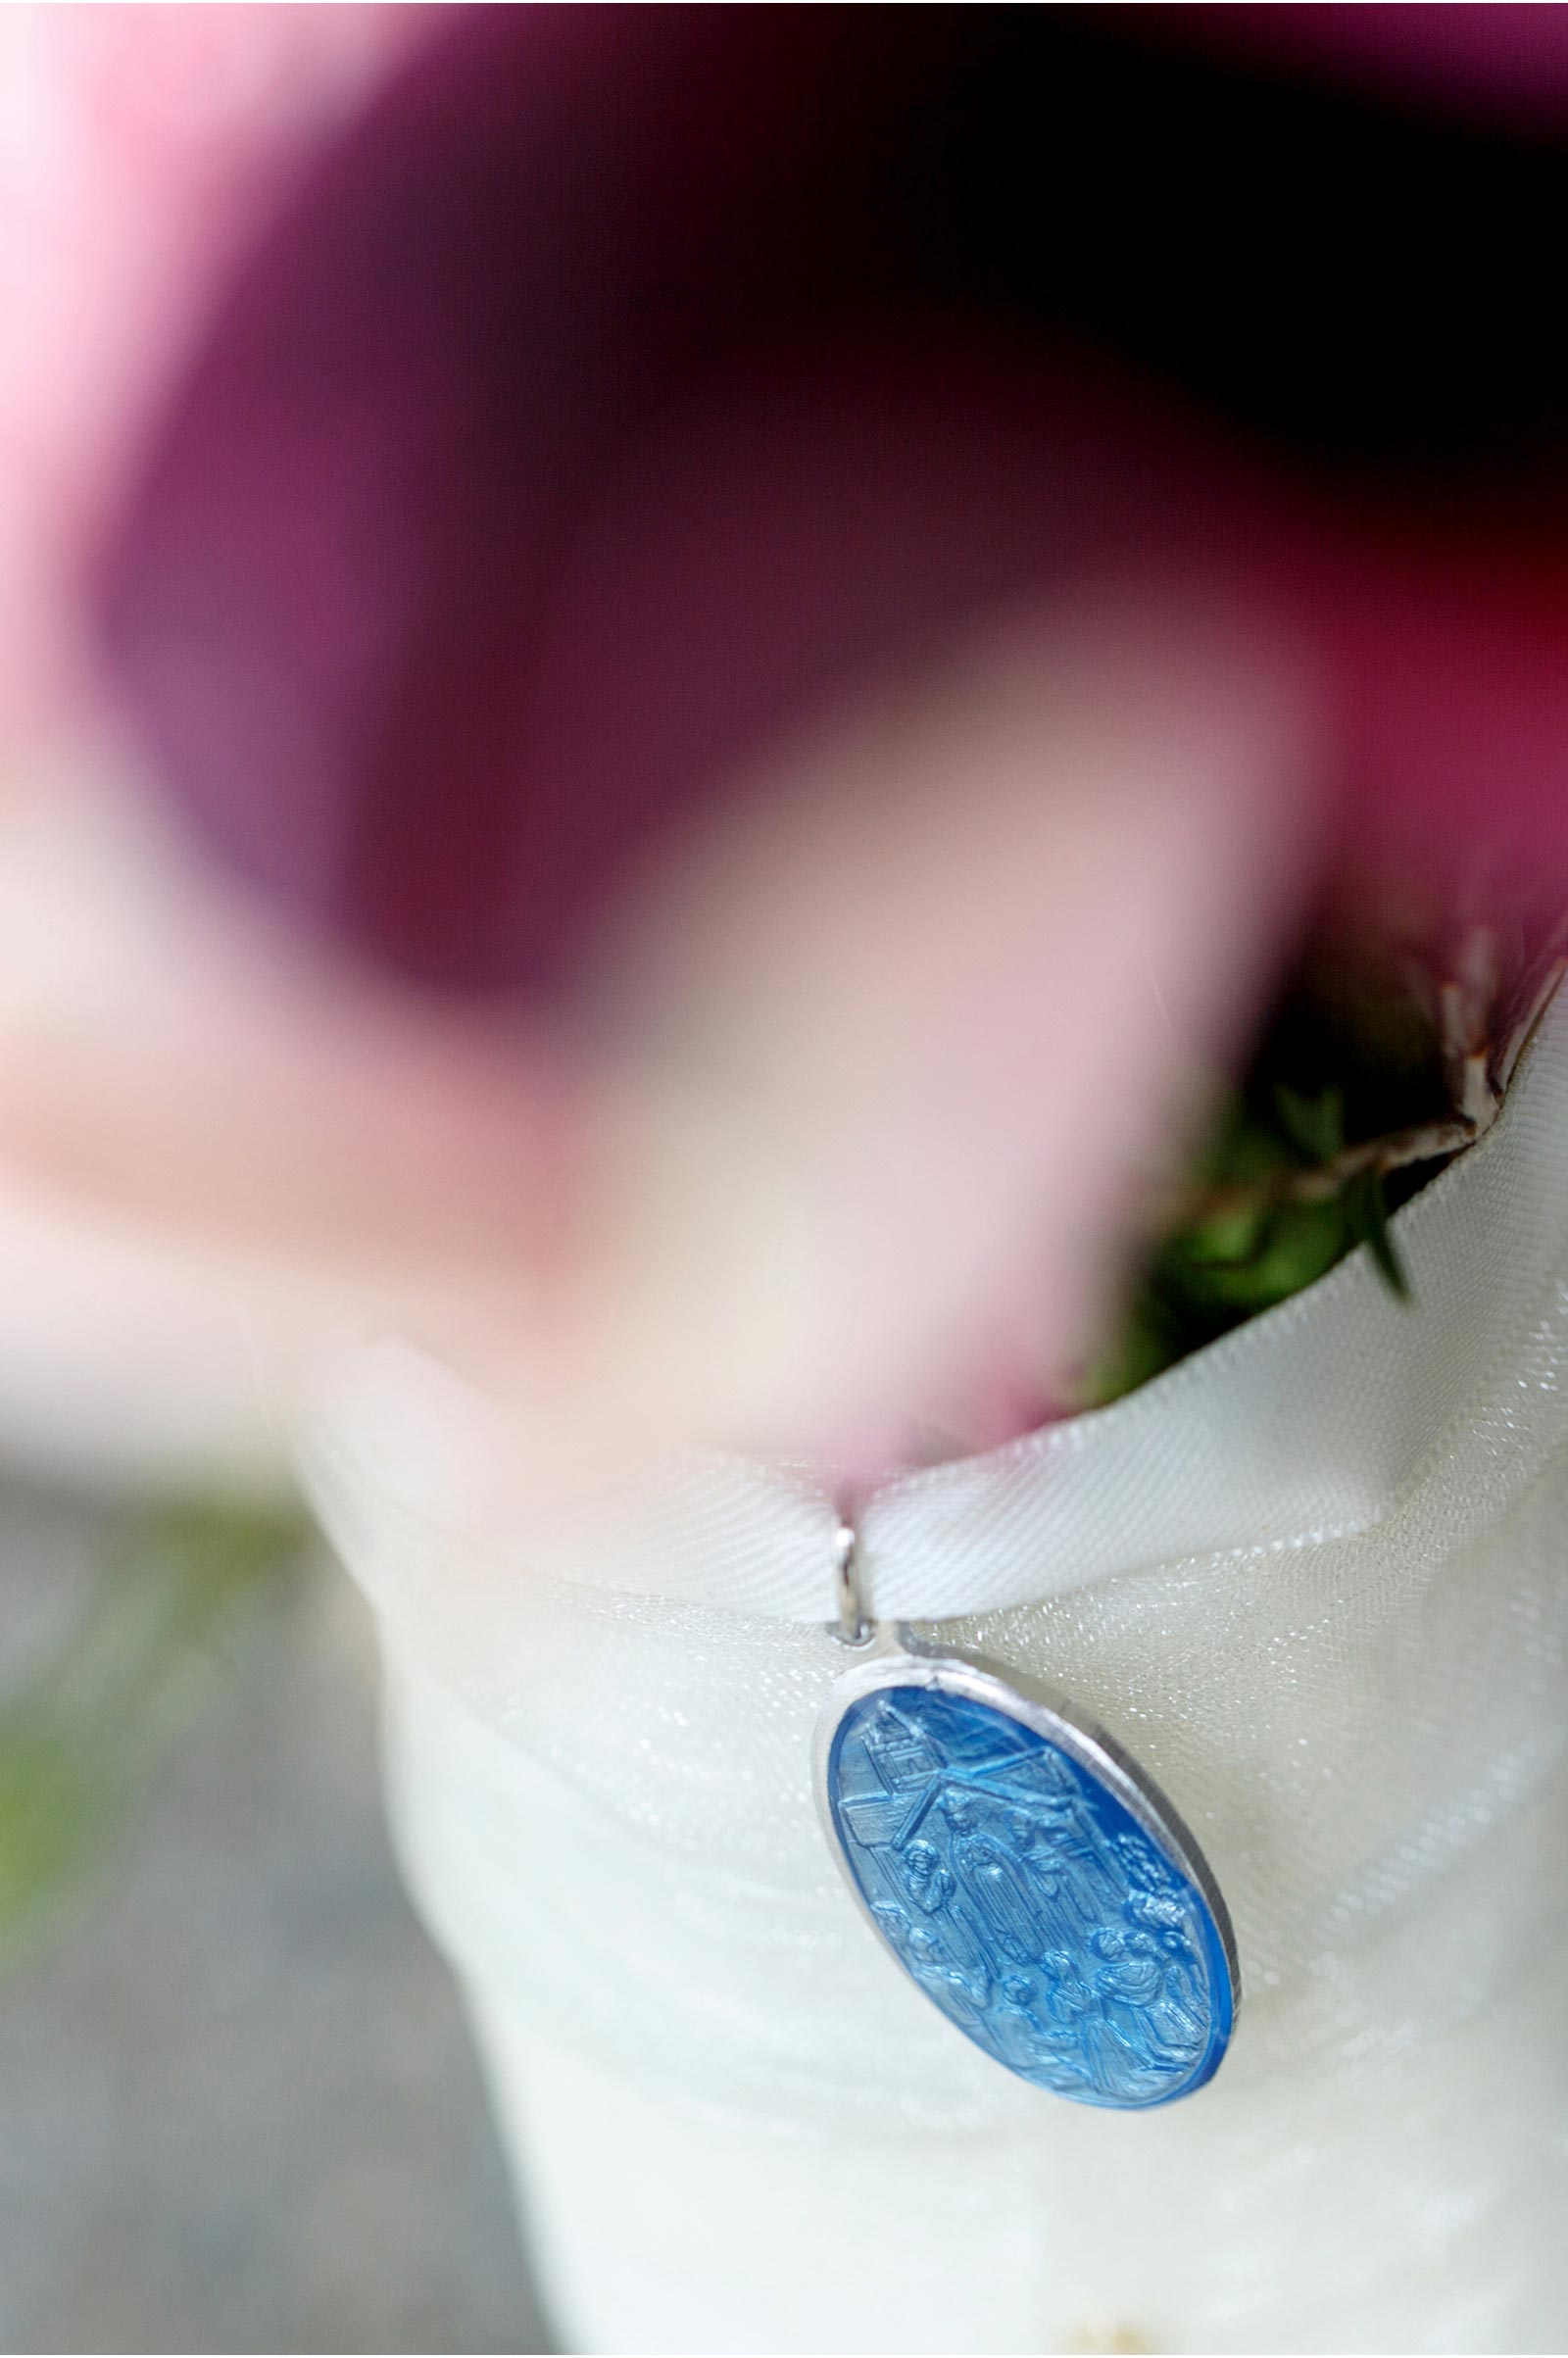 A very common site at an Irish wedding, a miraculous medal attached to the bridal bouquet